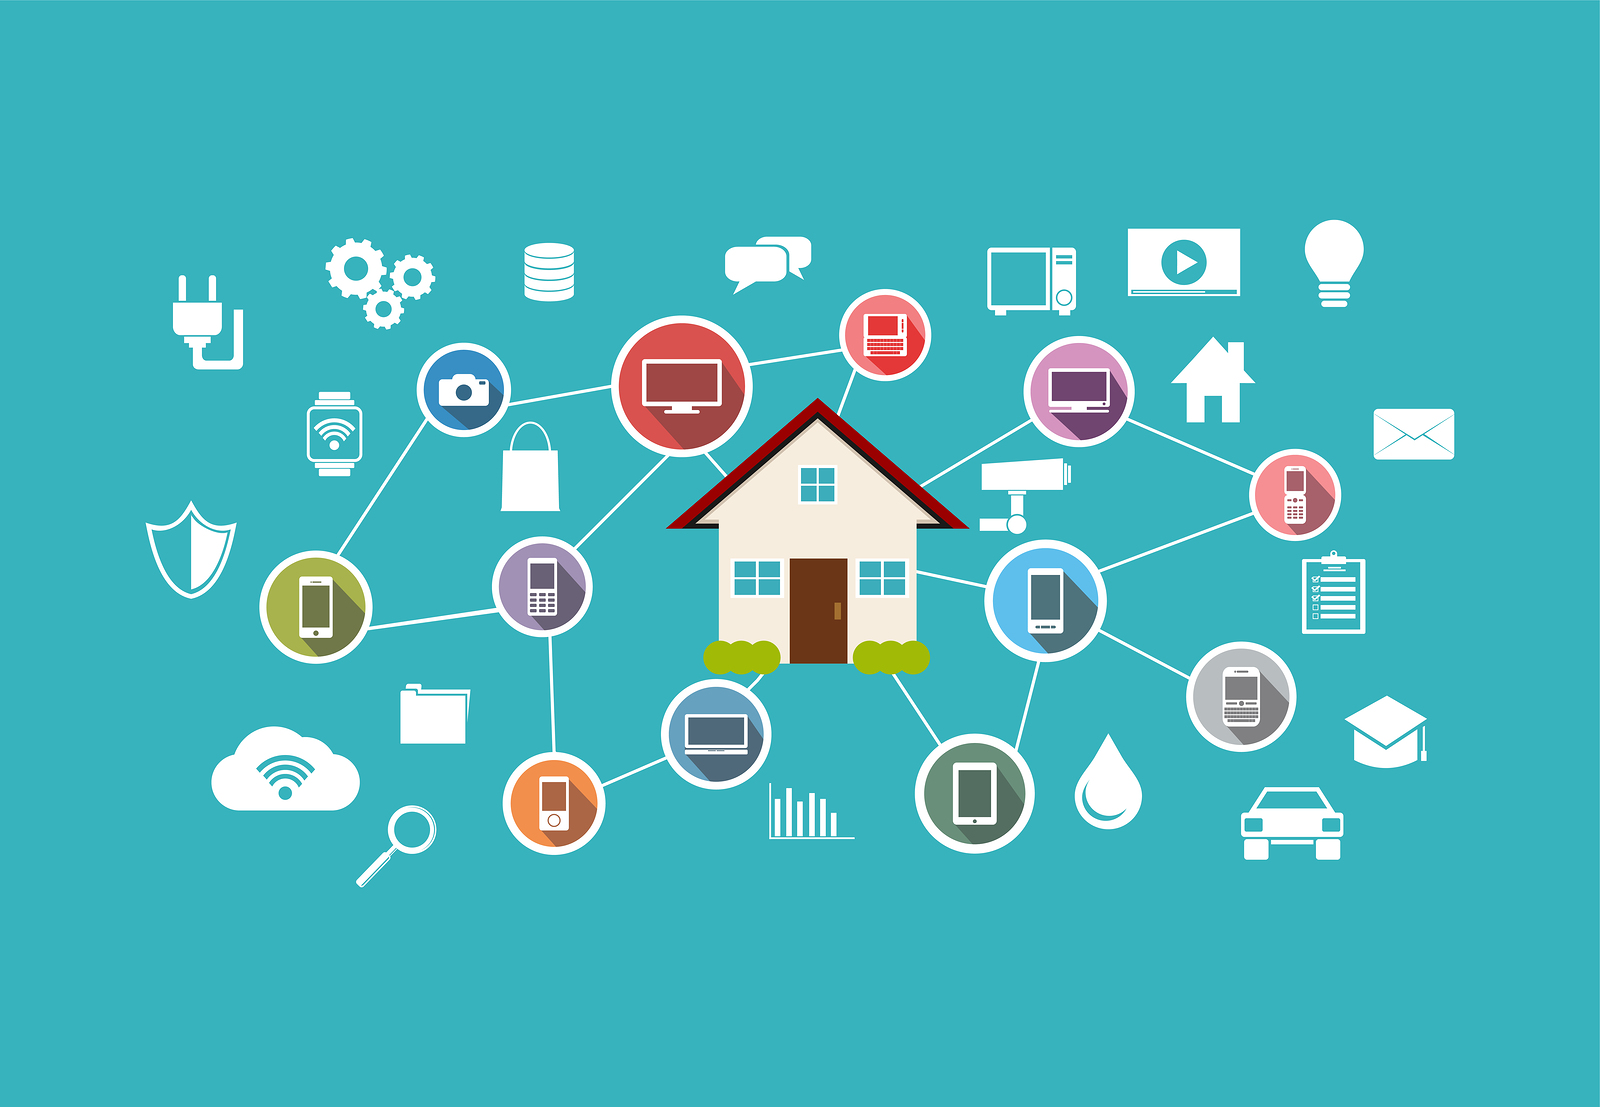 iot-devices-smart-home